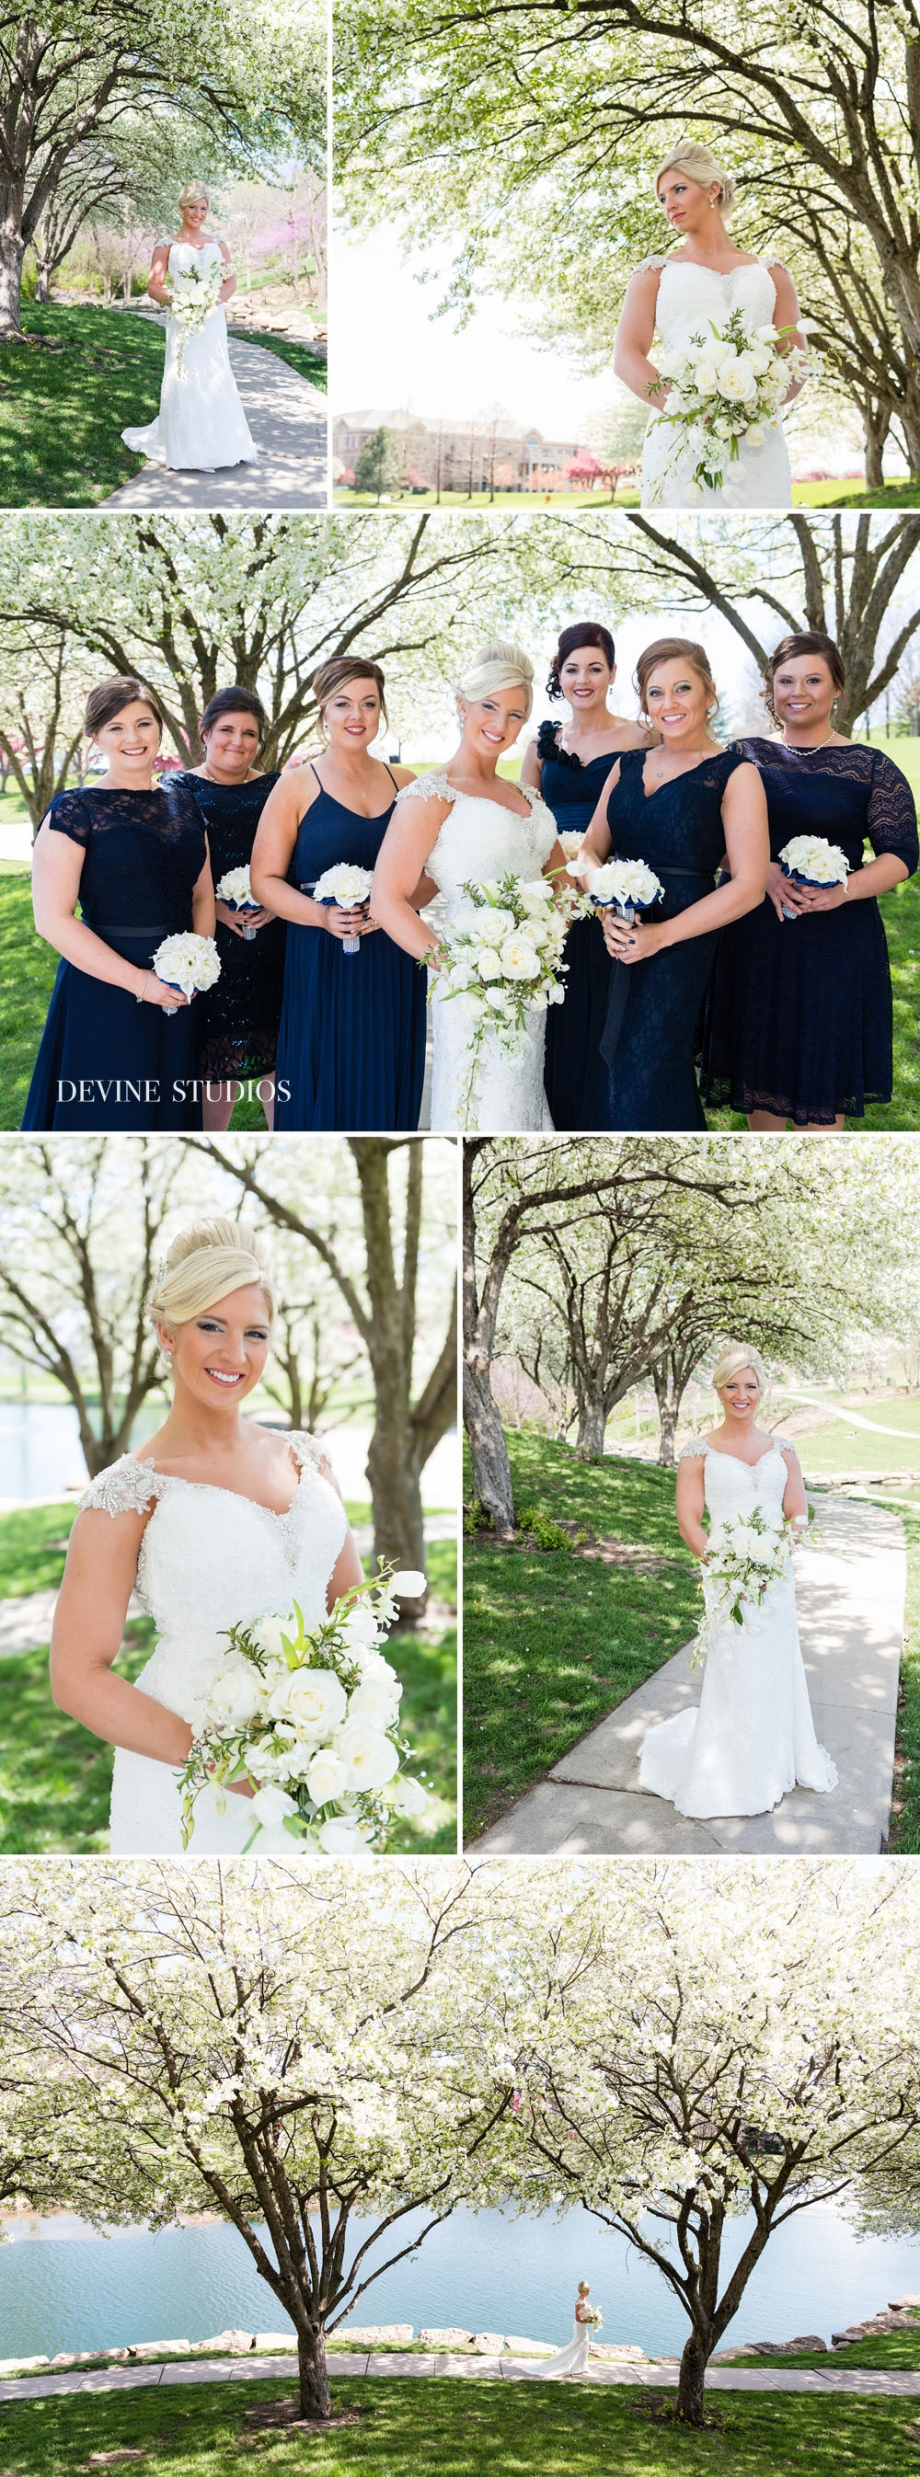 http://devinestudios.com/boudoir/wp-content/uploads/2016/05/10-839-post/Kansas-City-Wedding-Photography-Town-Pavilion-photojournalist-photographers6(pp_w920_h2477).jpg